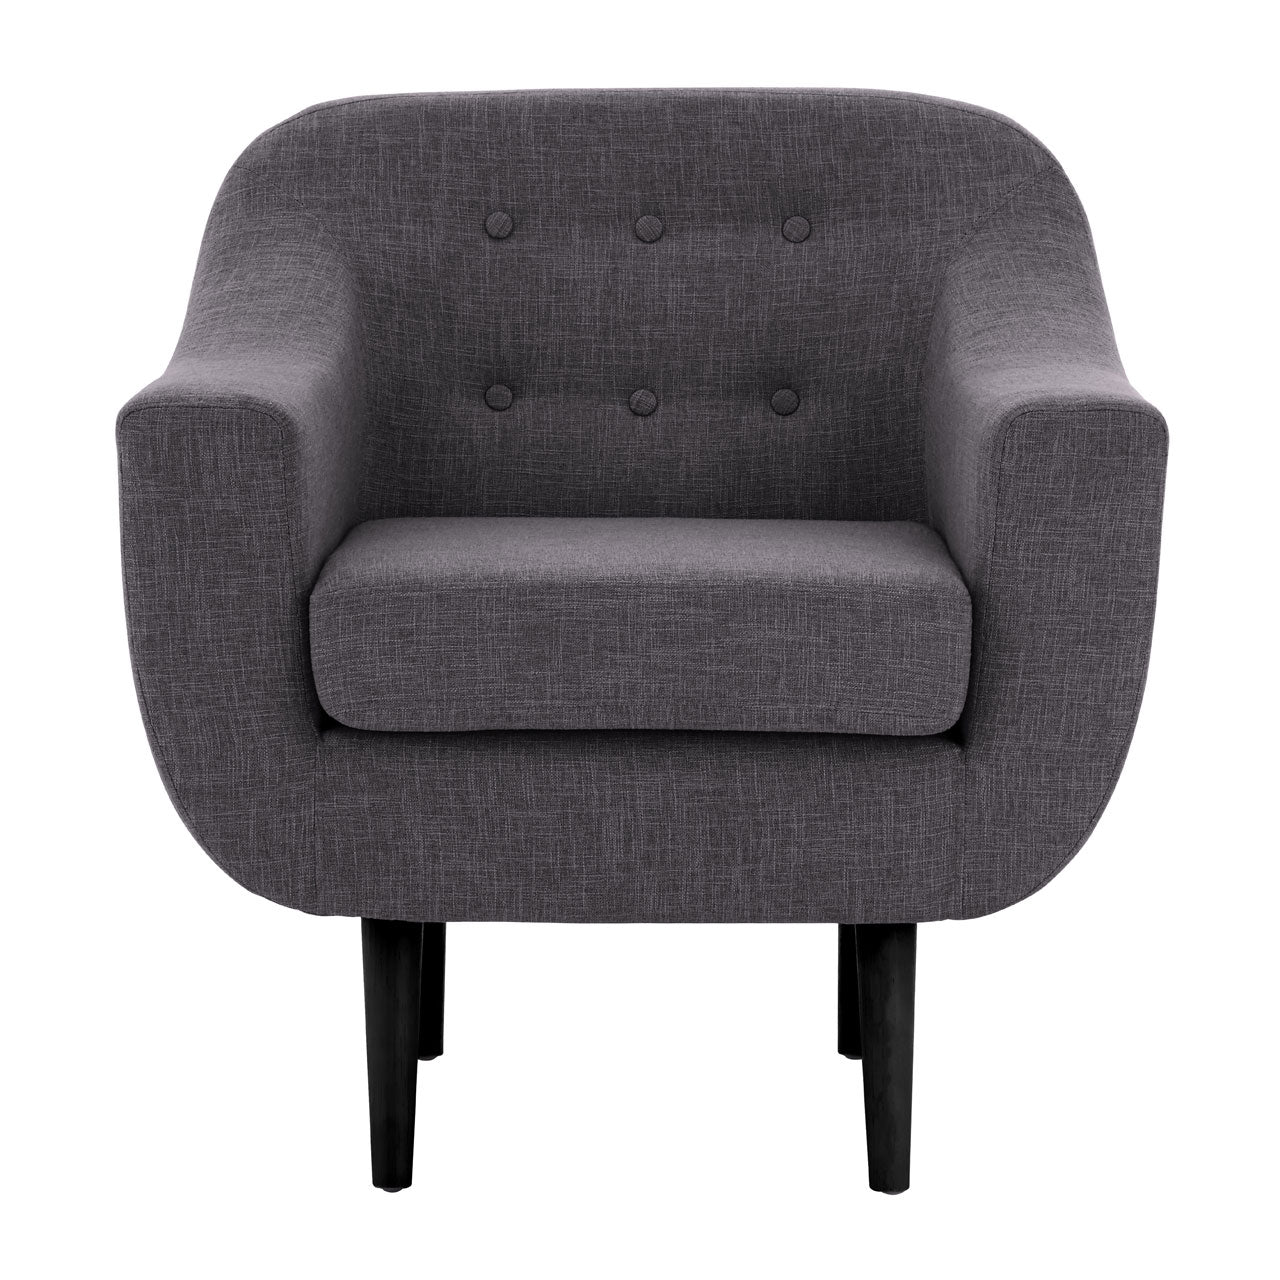 Odense Chair in Grey